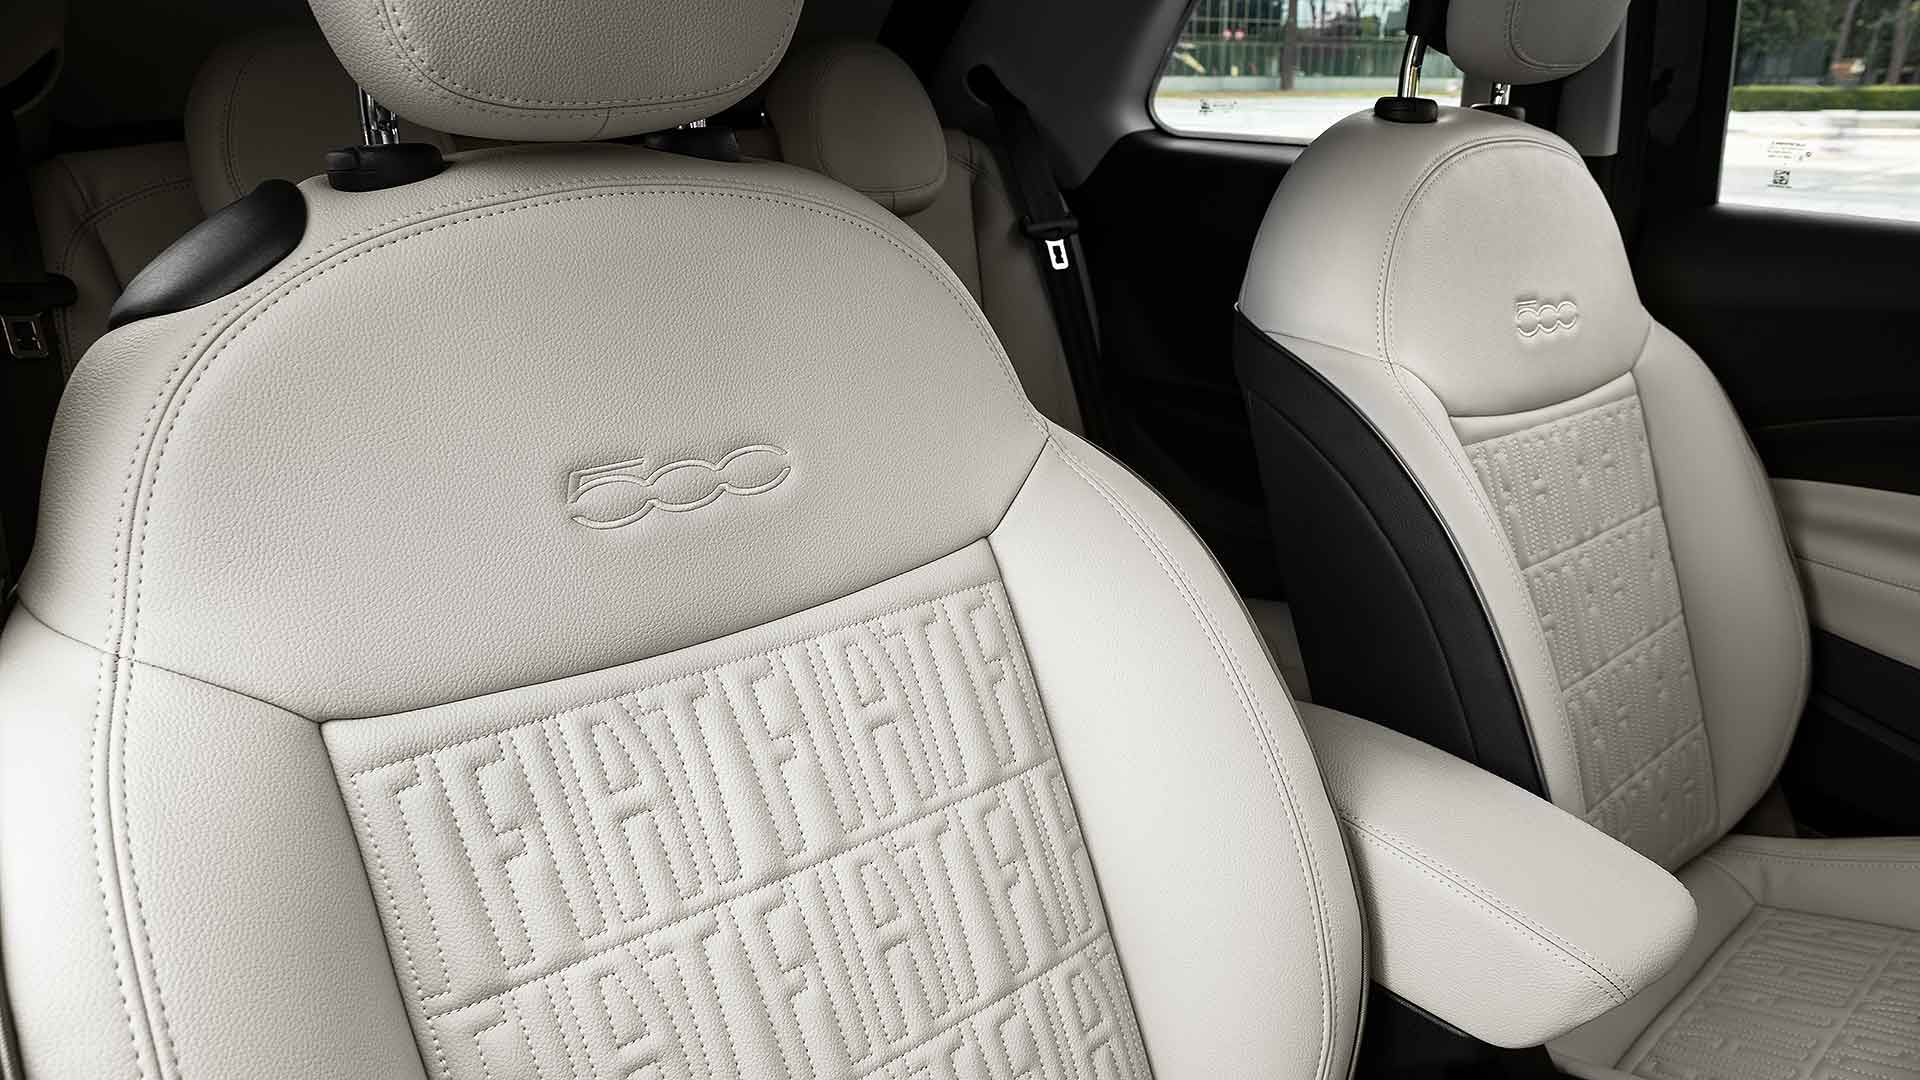 Electric Fiat 500 hatch seats